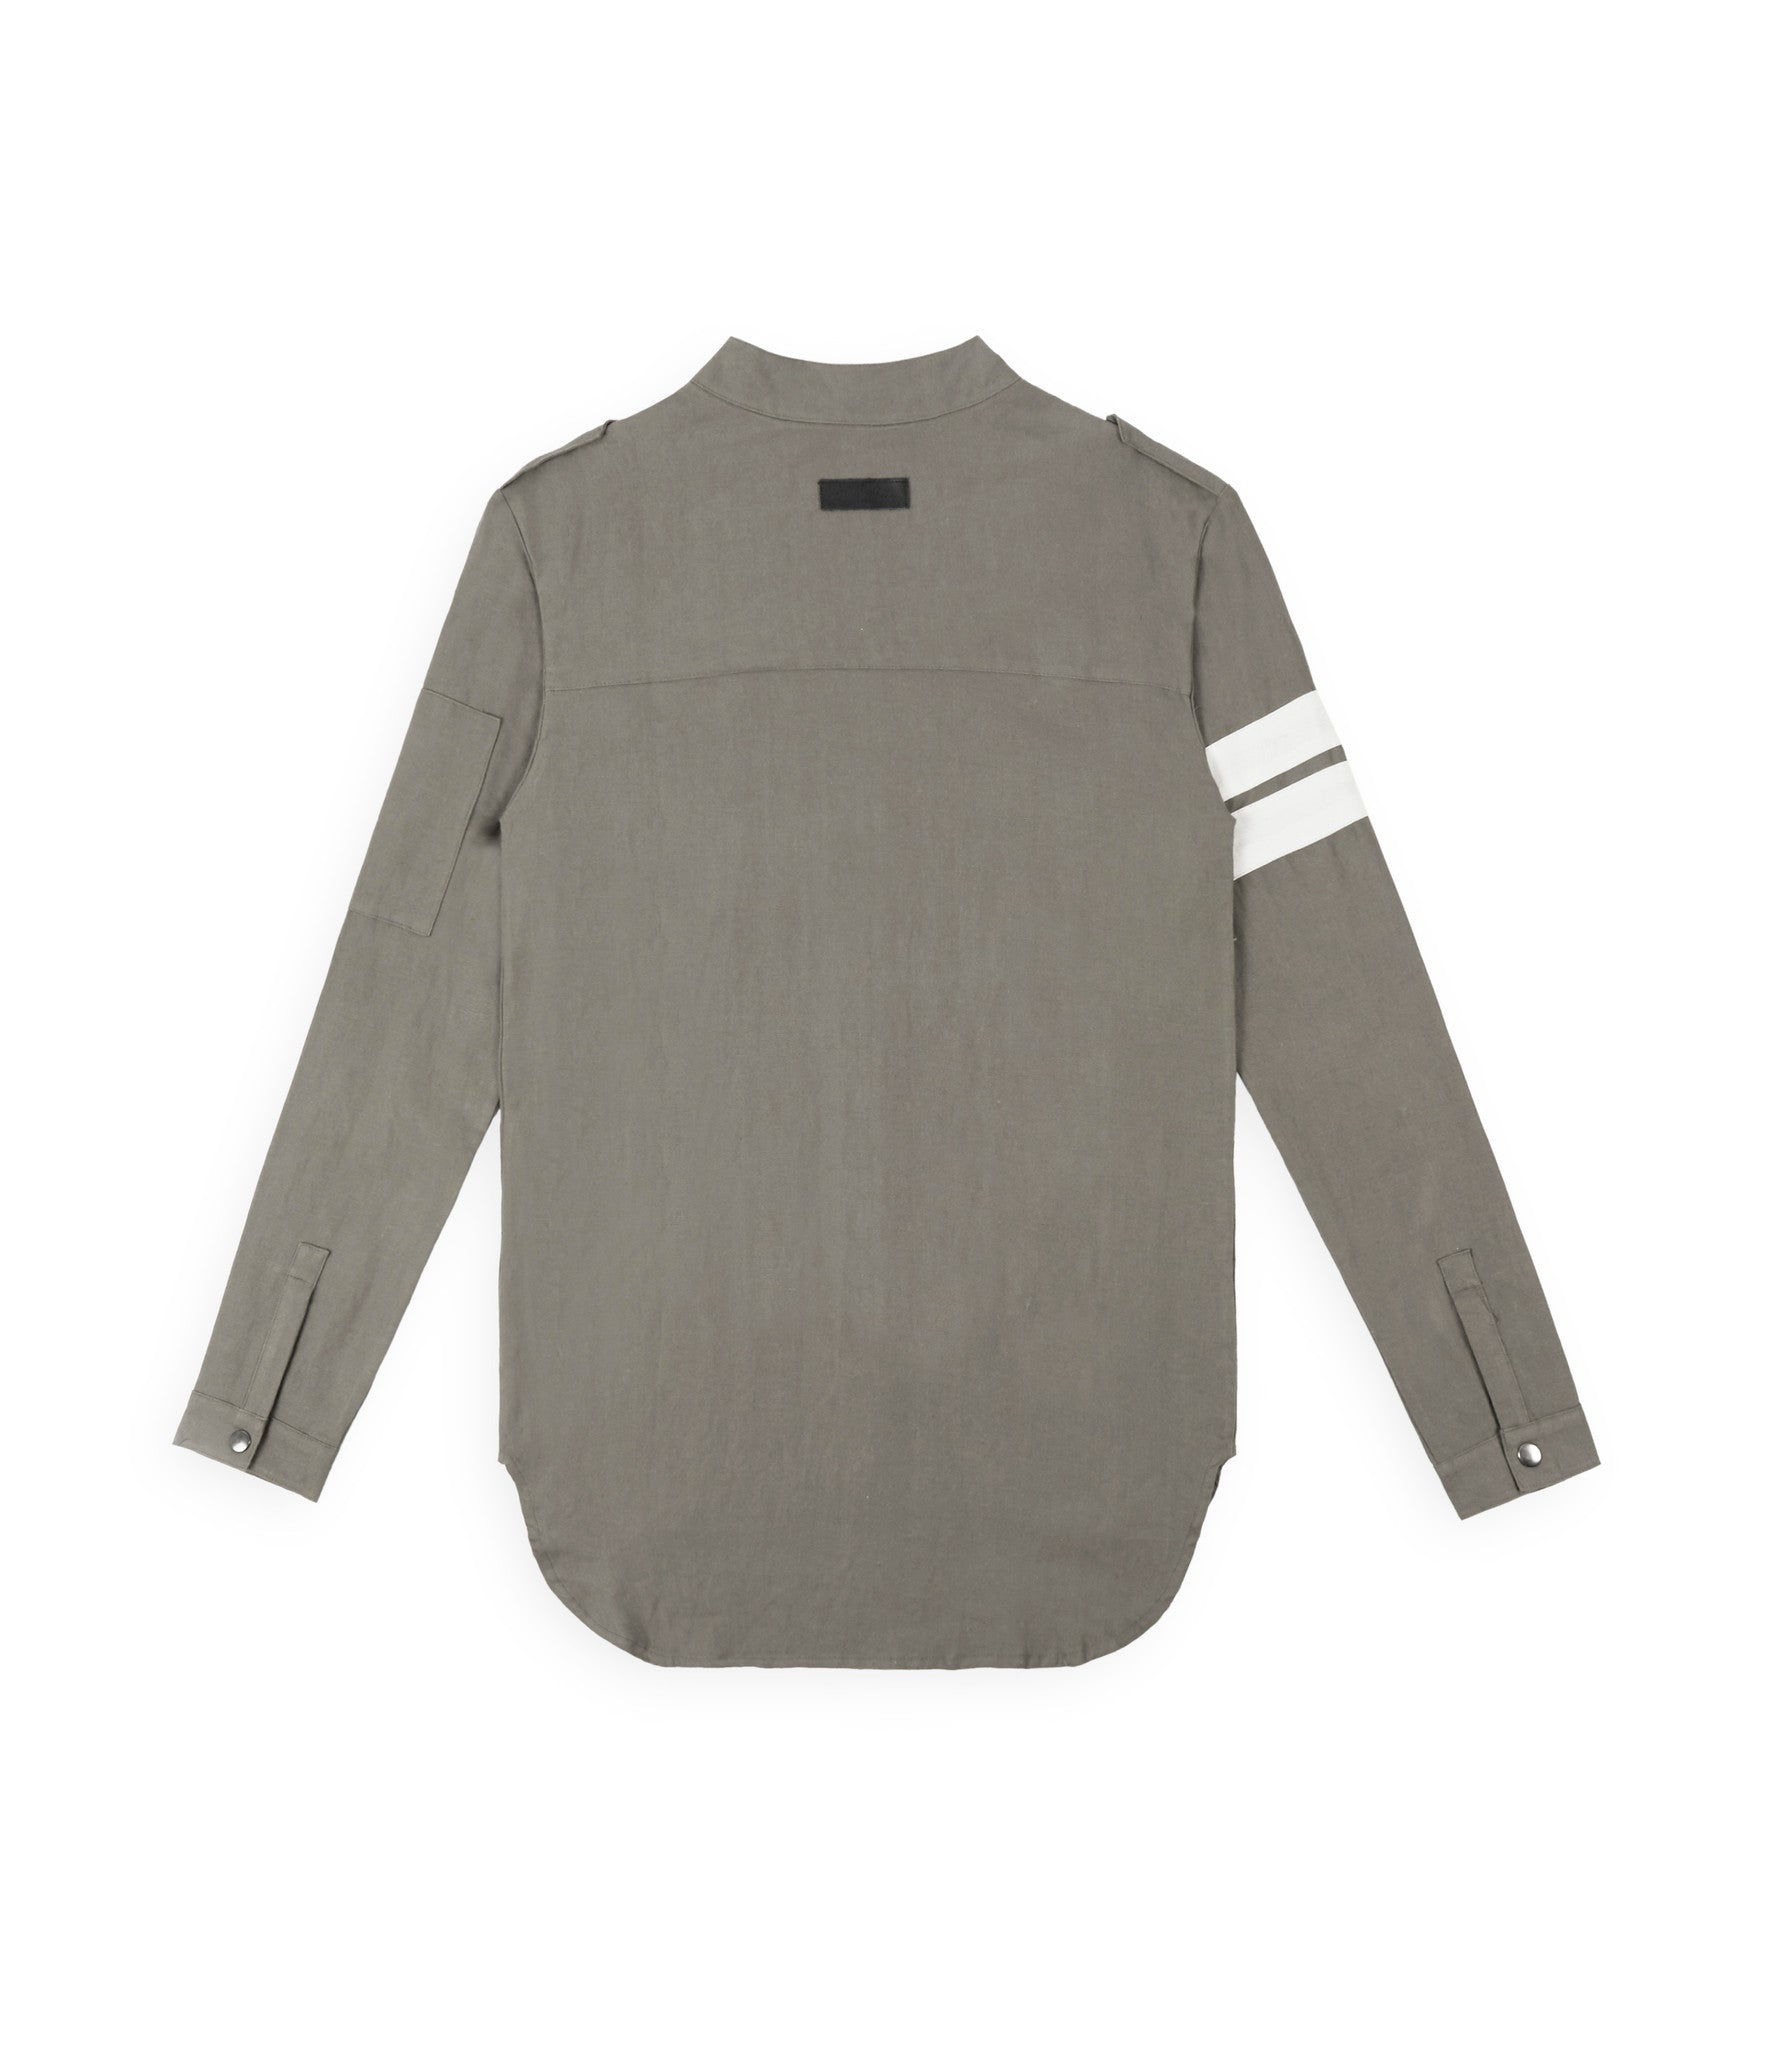 SH273 Exile Military Shirt - Khaki - underated london - underatedco - 5